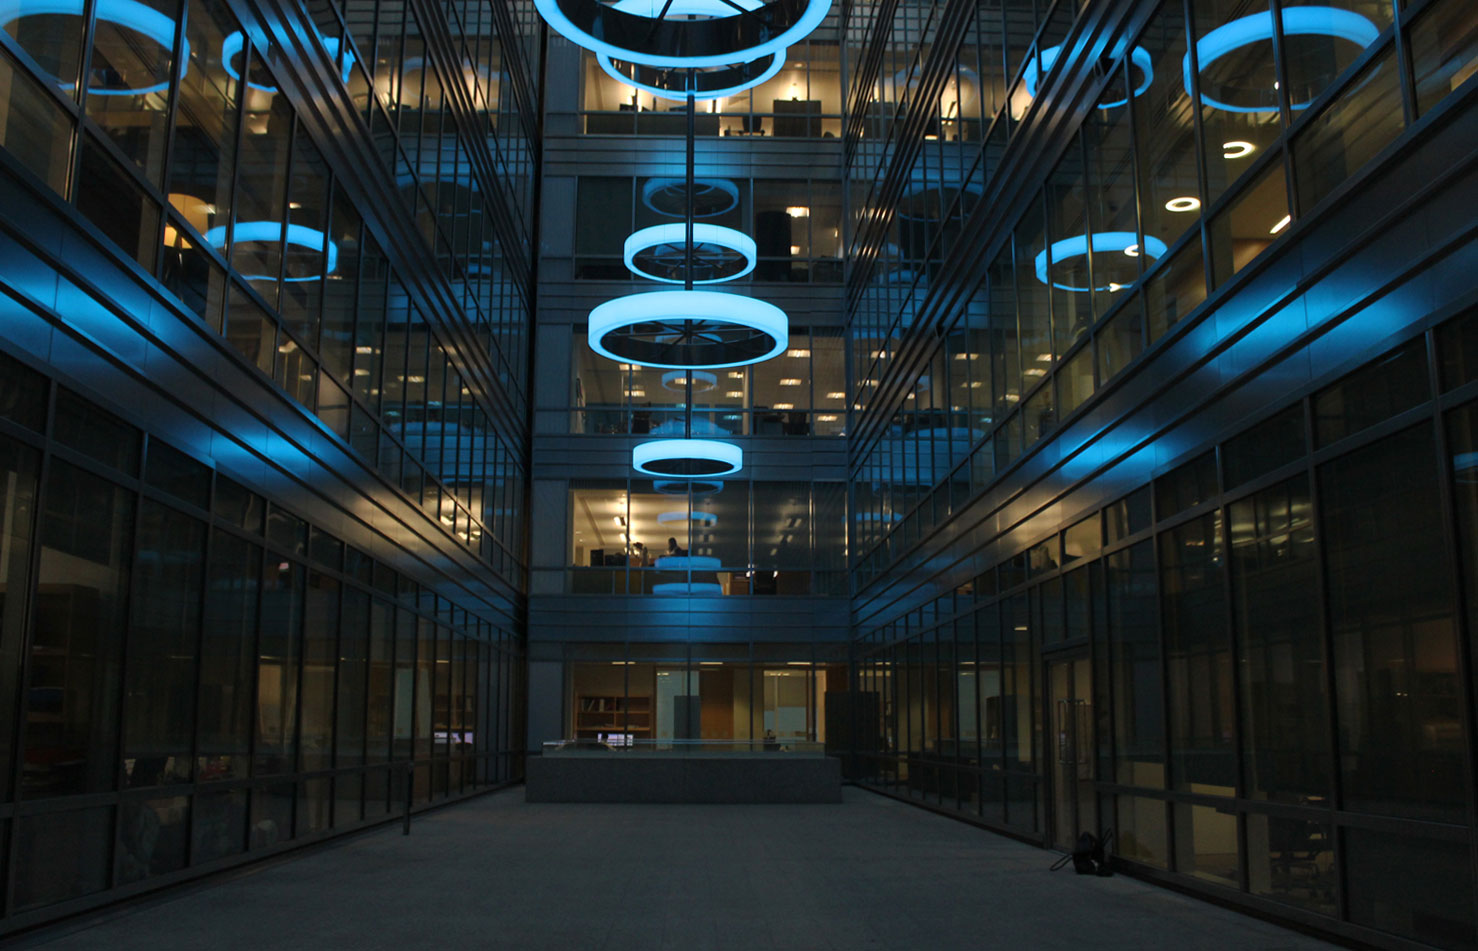 bespoke lighting broadgate quarter lightlab 11